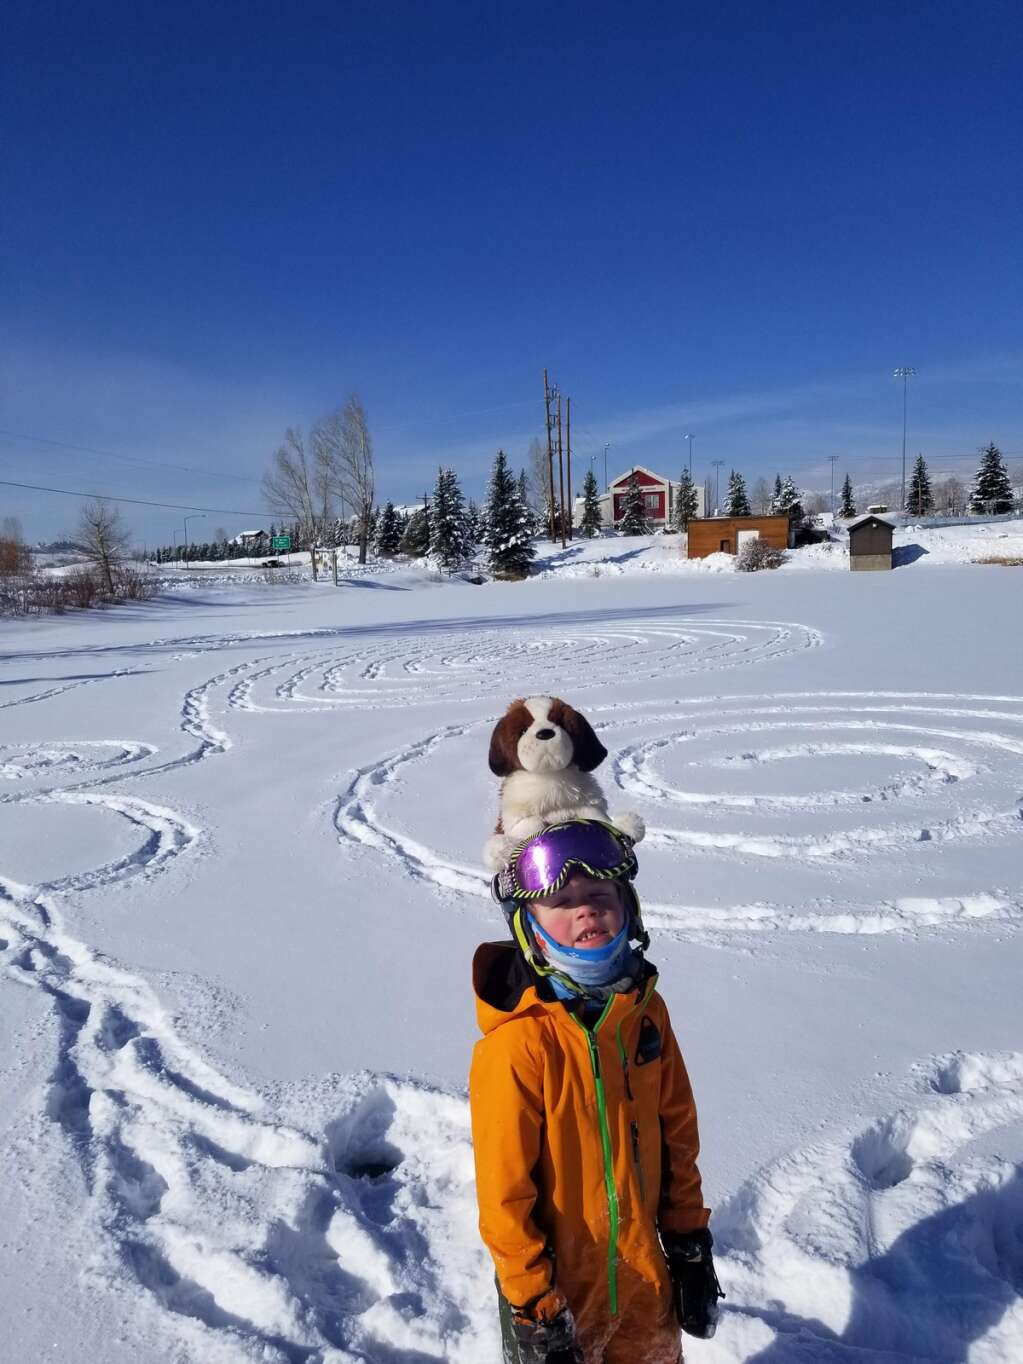 Isaac Reynolds, 6, and his Powder Dog made a Valentine's Day snow drawing on Casey's Pond.